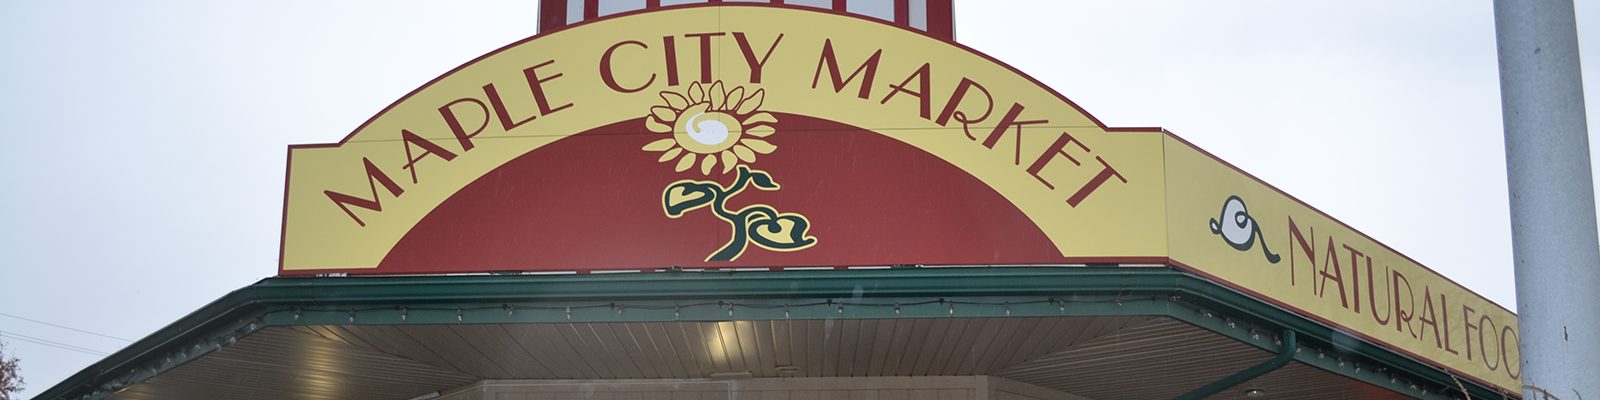 Maple City Market